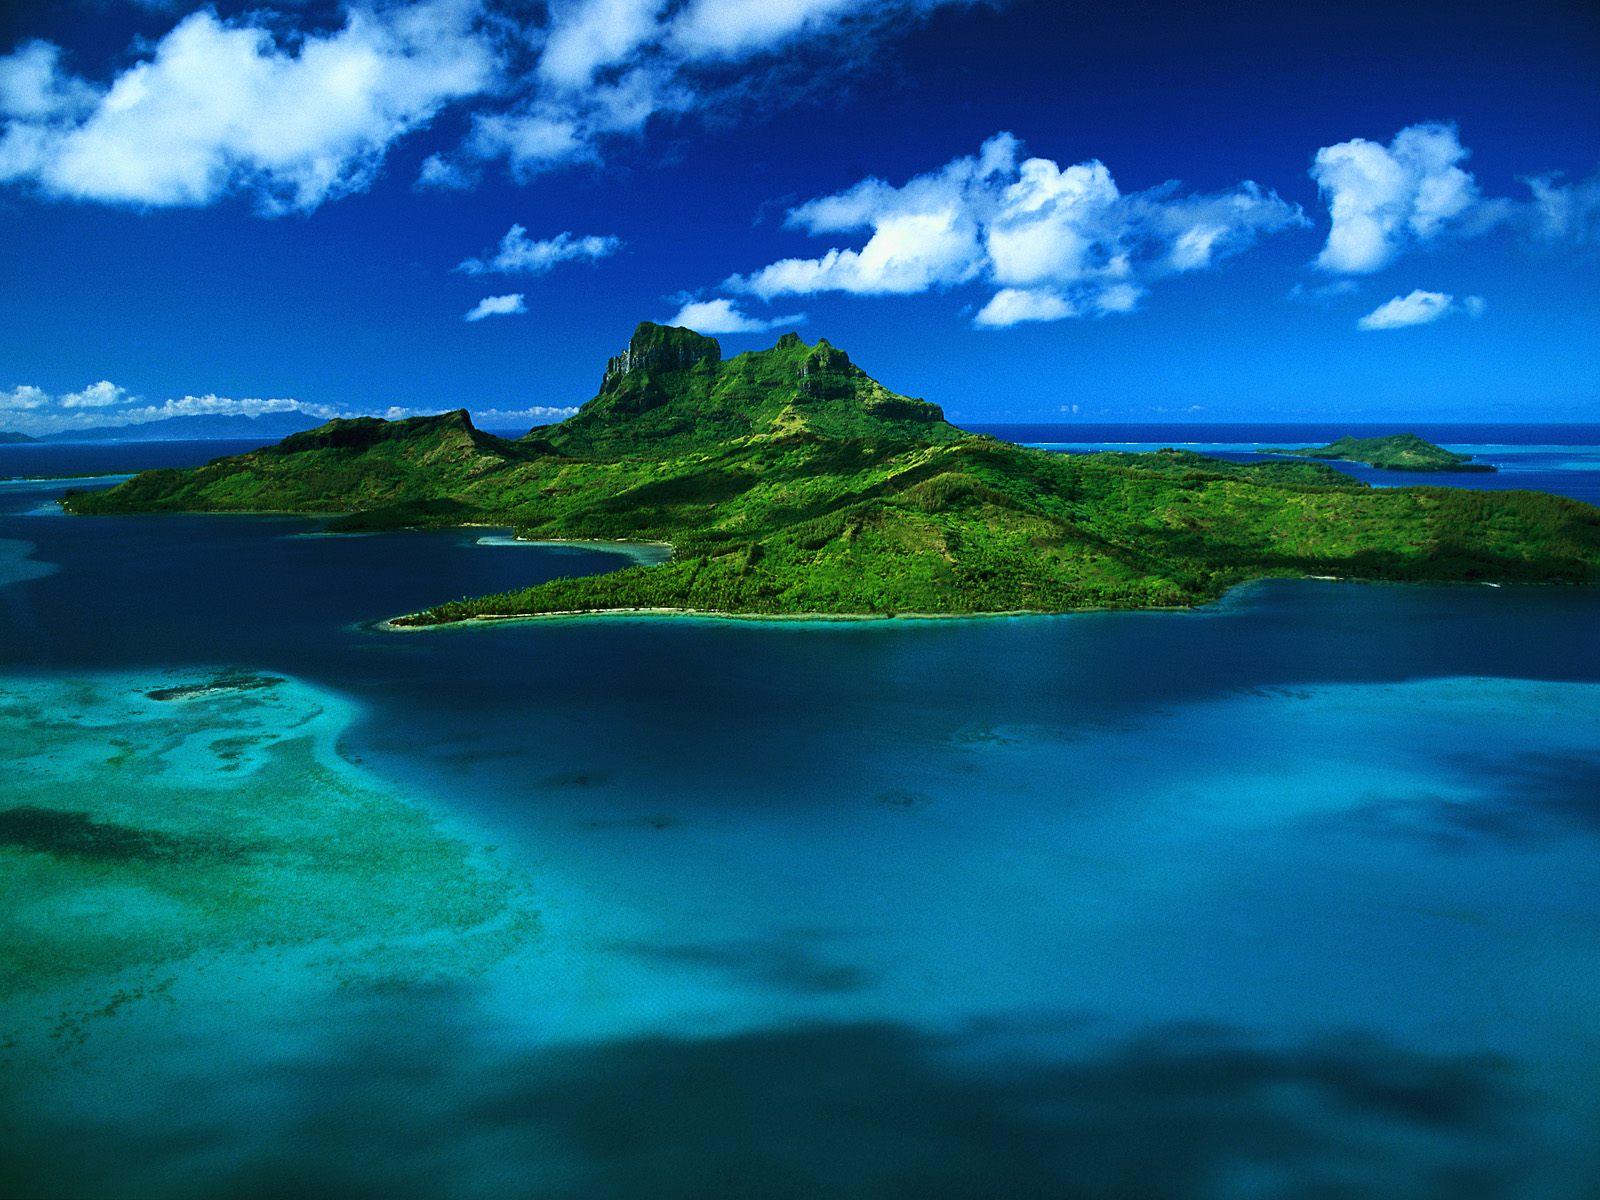 http://4.bp.blogspot.com/-Gvbdy6JxpvI/Tm7EKr_UGmI/AAAAAAAAAYs/Dv_UYknnXTw/s1600/aerial-view-of-bora-bora-french-polynesia-window-xp-wallpaper.jpg